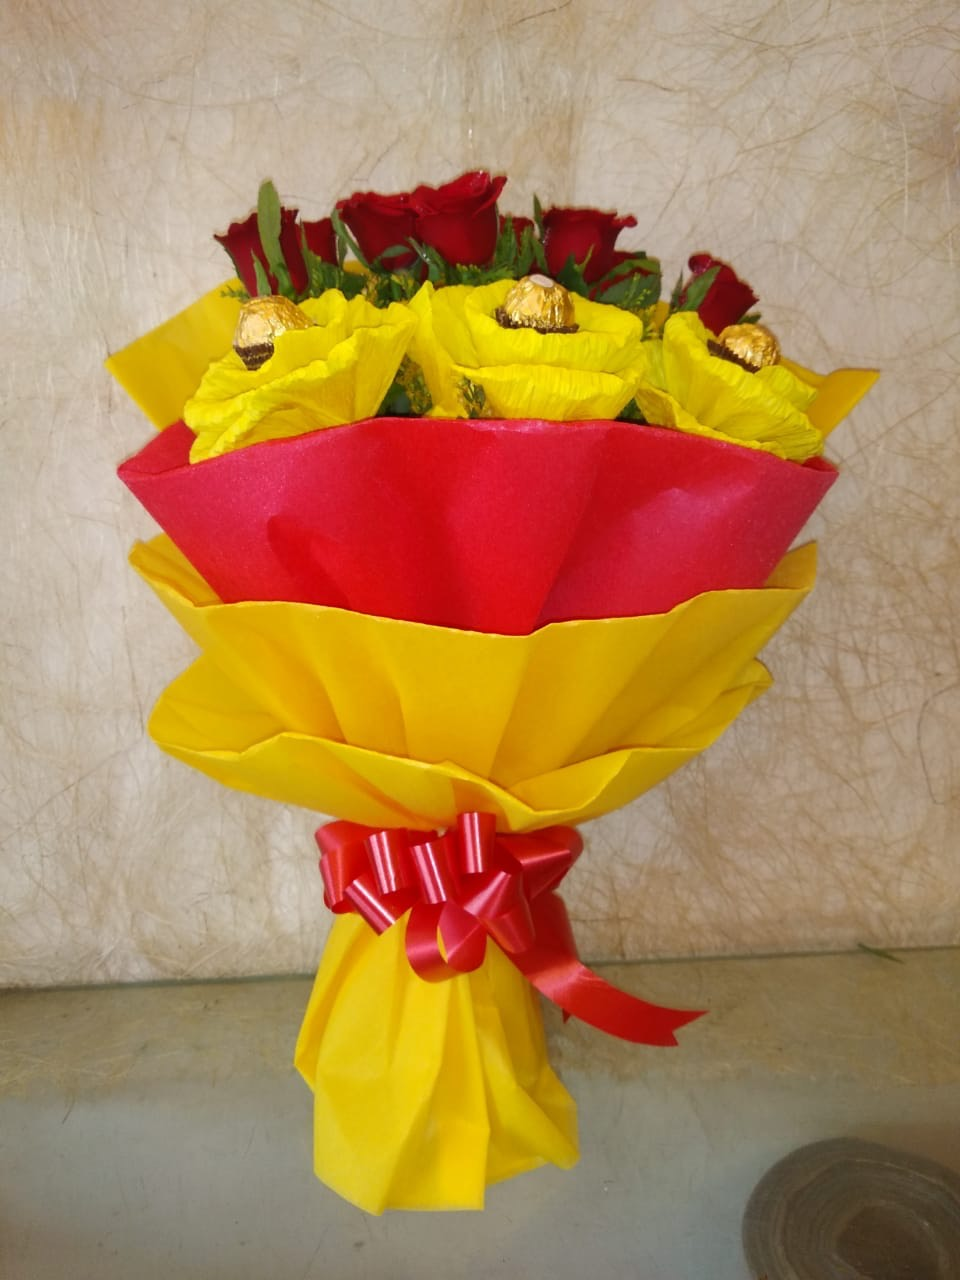 Flowers Delivery in Sector 13 GurgaonRed Roses Ferrero Rocher Bunch